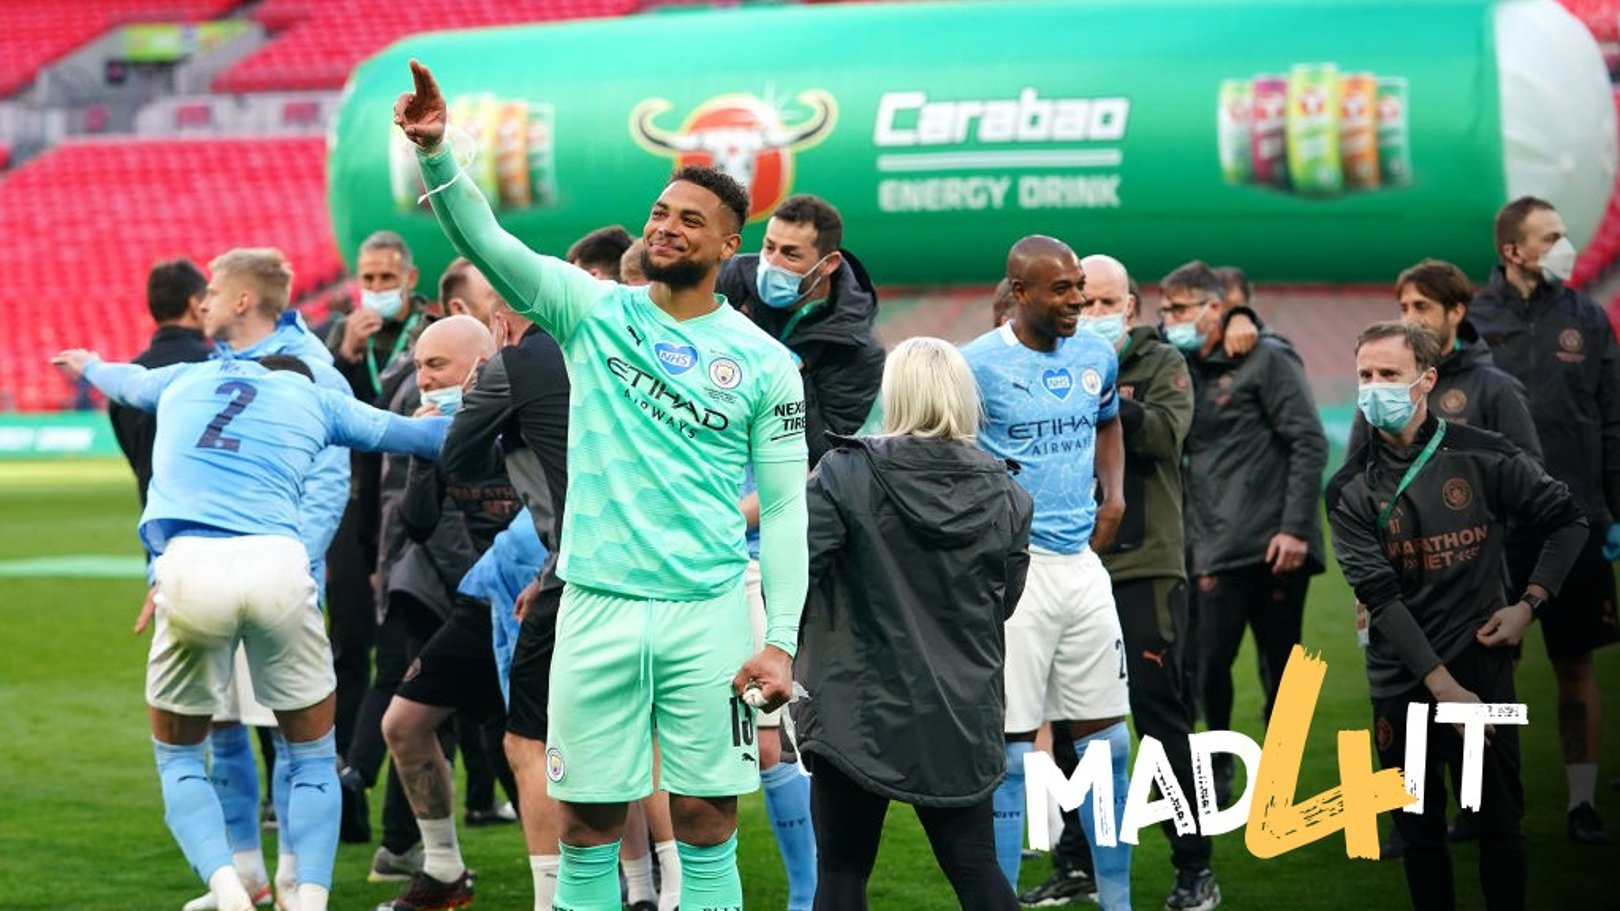 Morrison and Goater hand Carabao Cup plaudits to Steffen